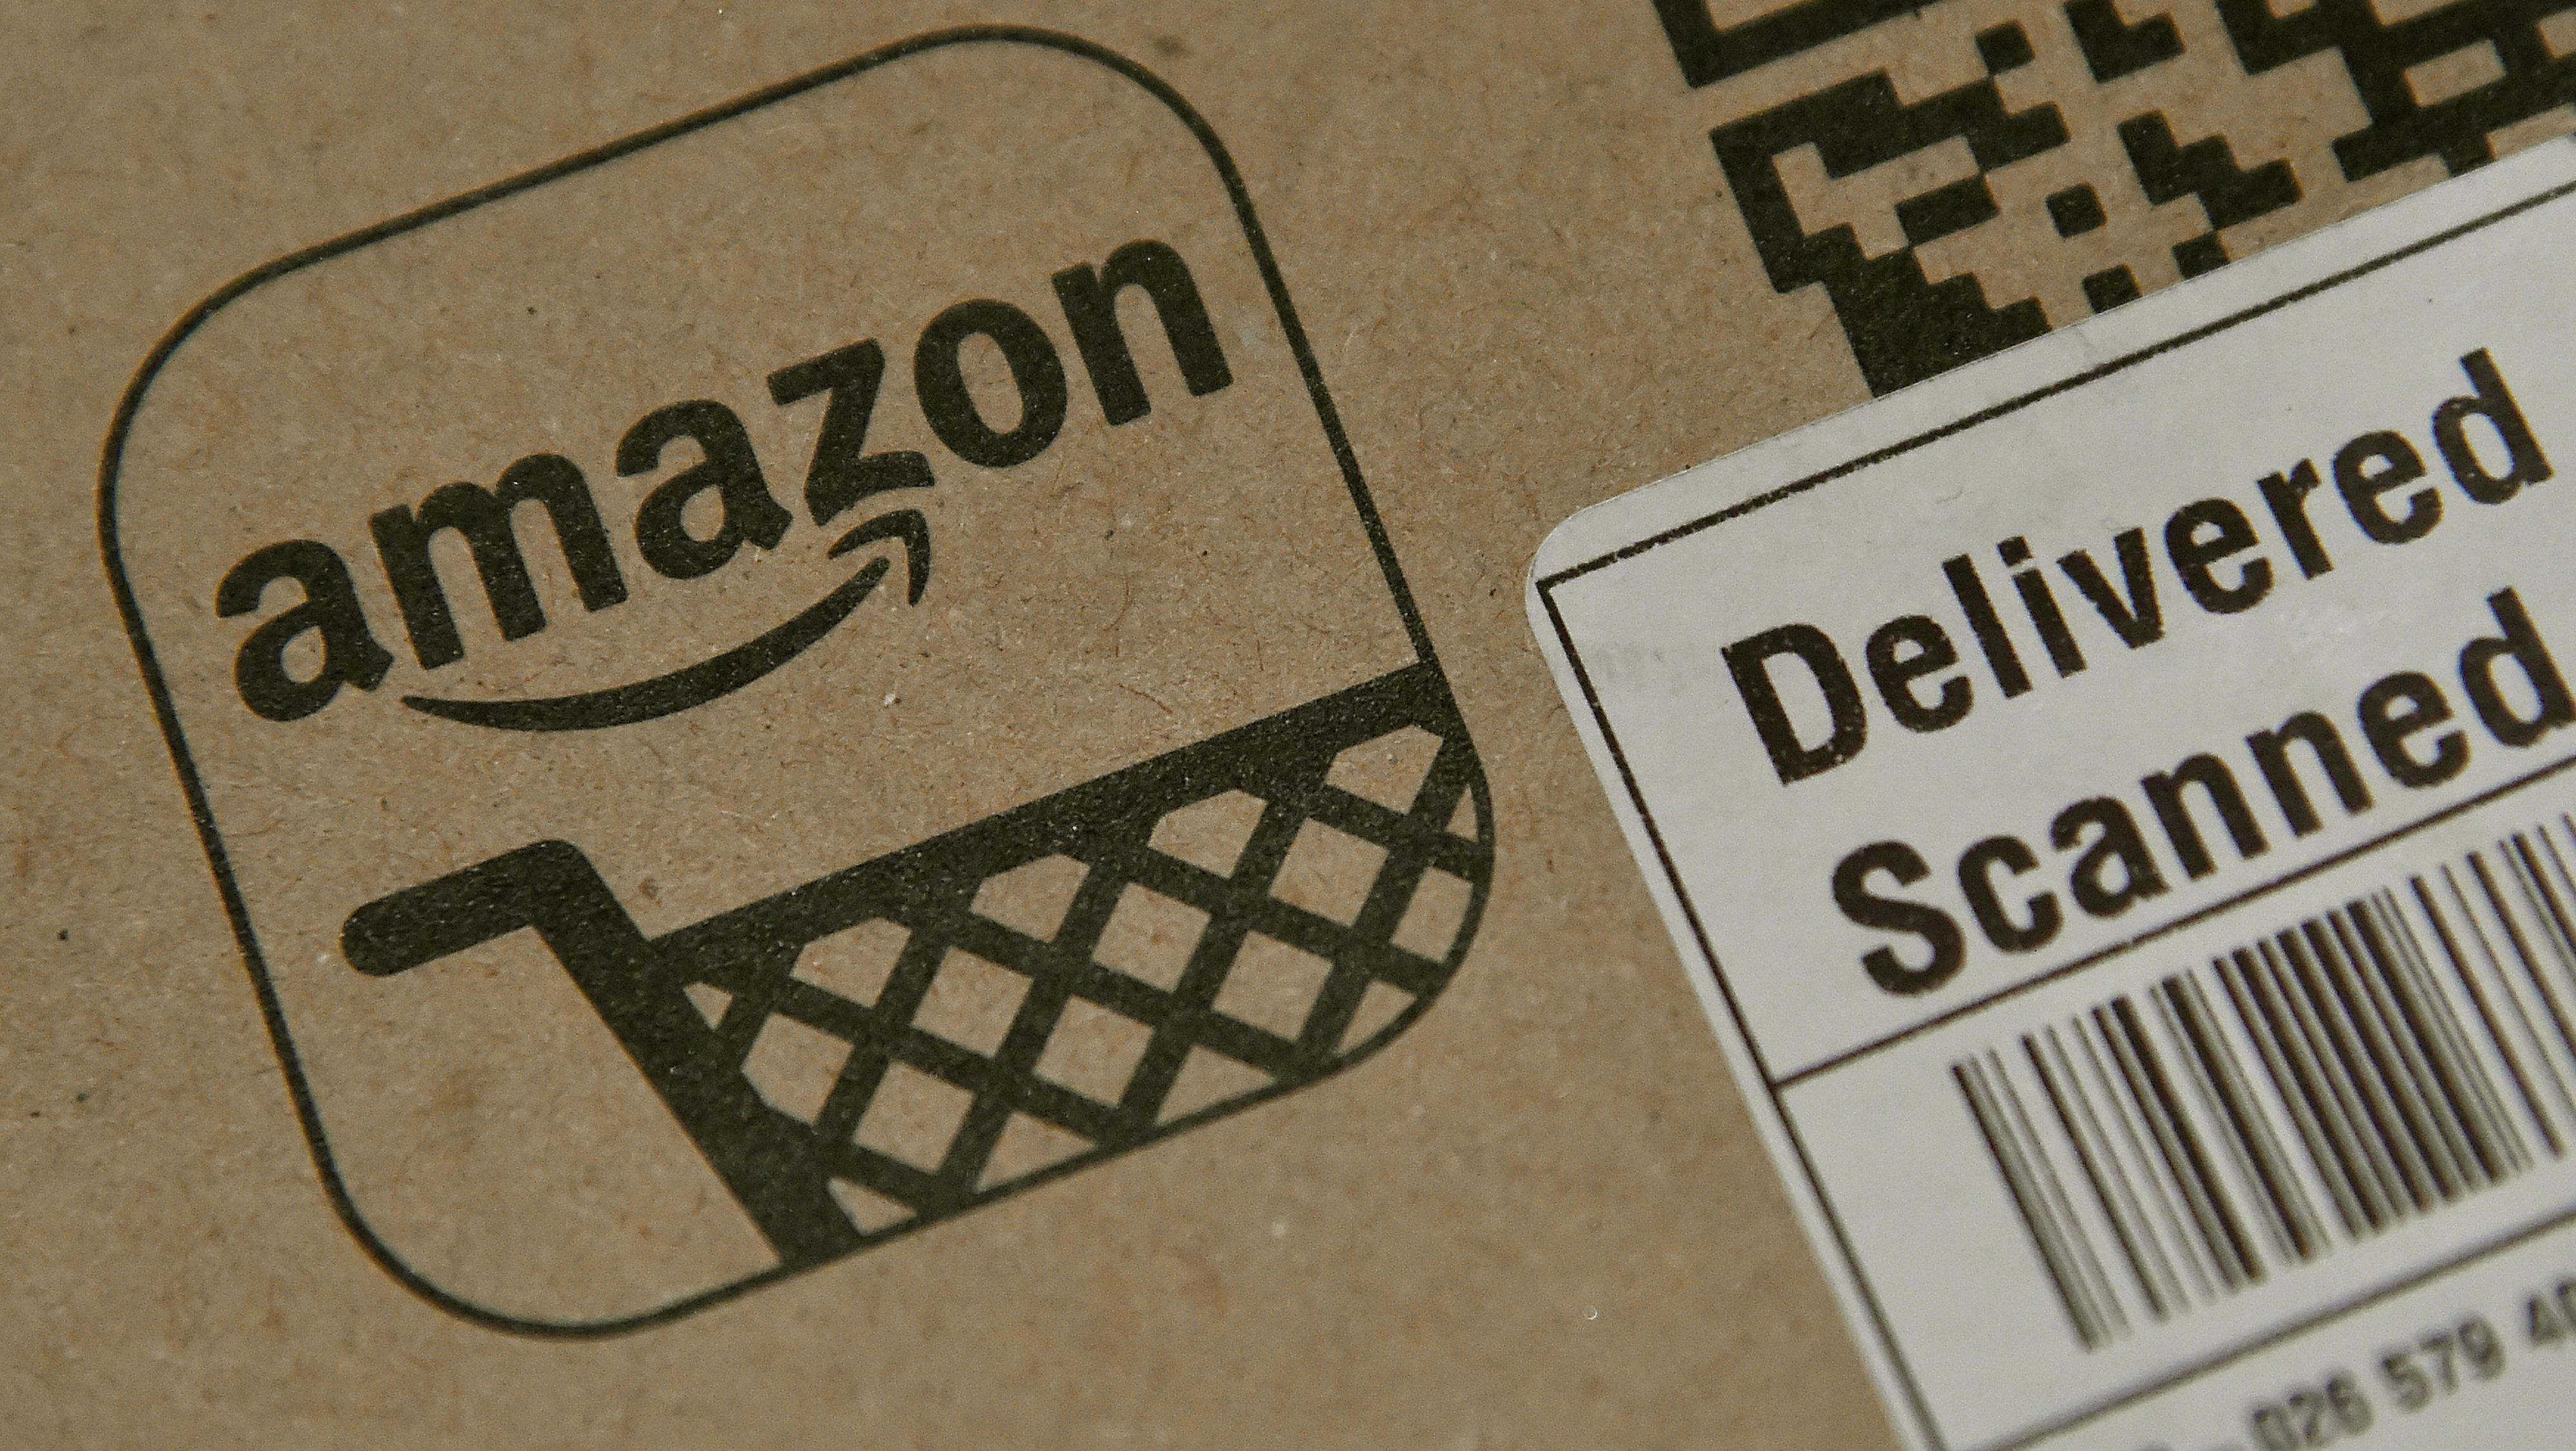 An Amazon package.